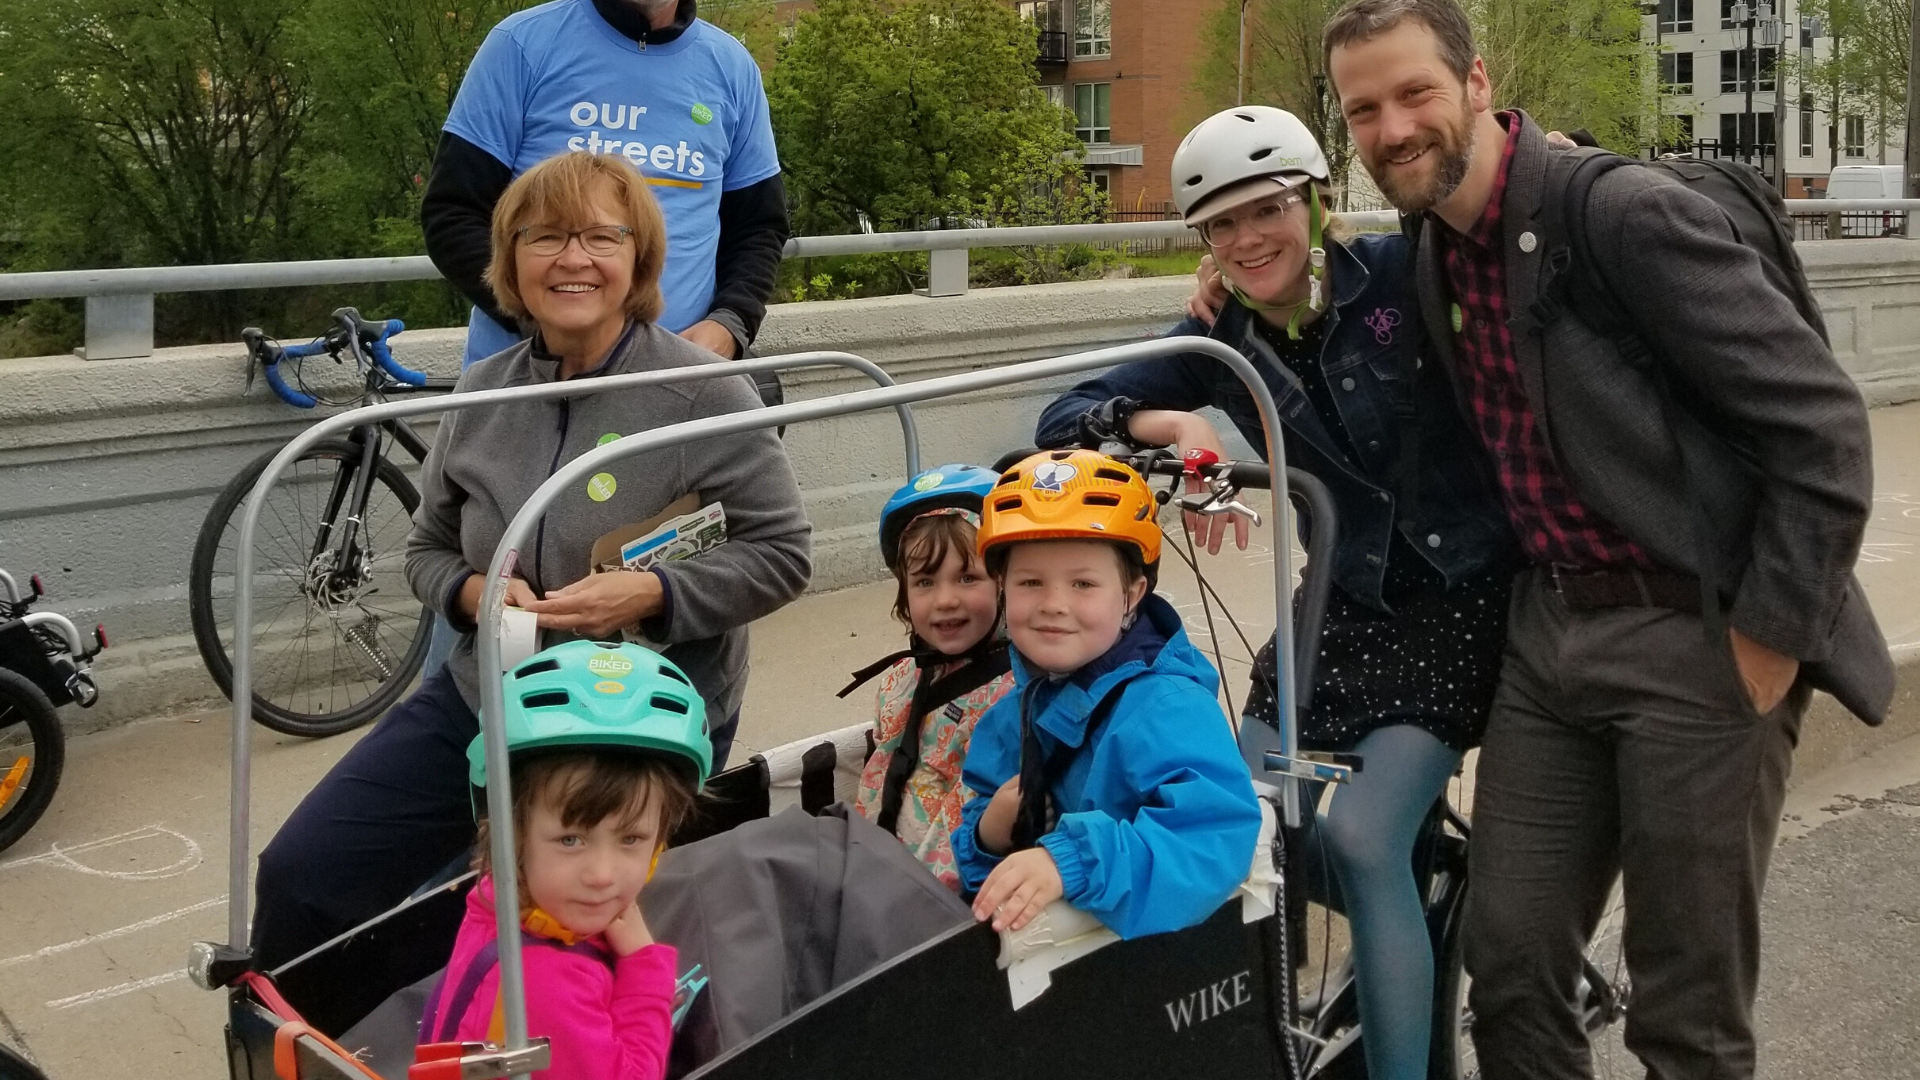 Molly Sullivan biking with her family at Twin Cities Bike to Work Day 2019